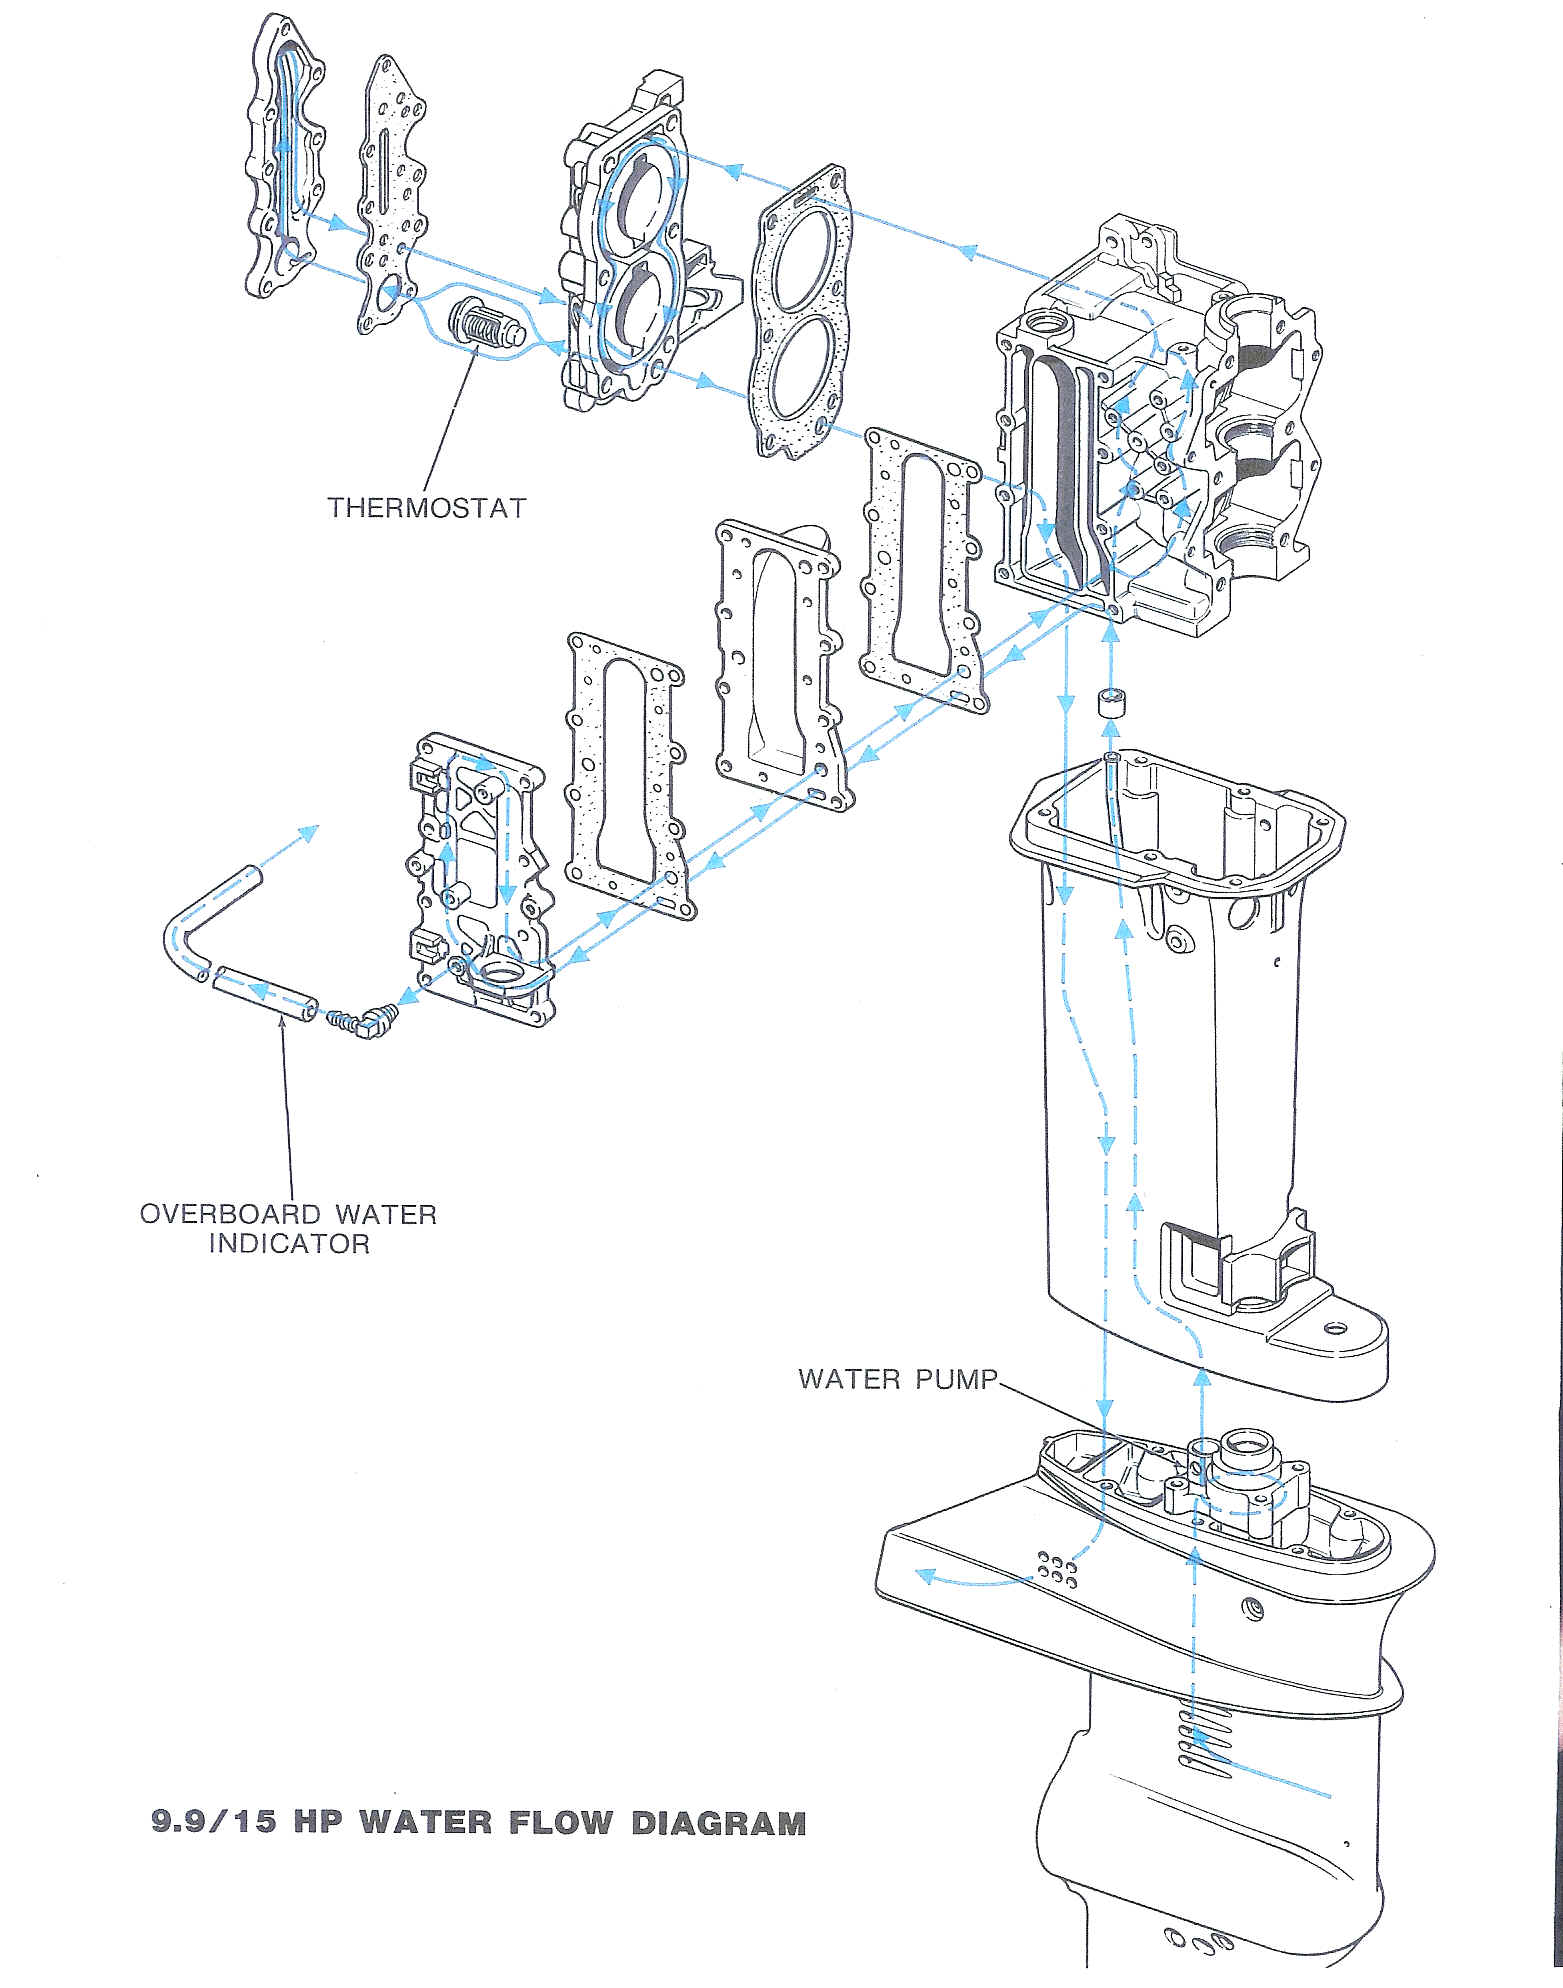 35 Hp Johnson 3 Cyl Wiring Diagram Starting Know About Mercury Outboard Motor Images Gallery 74 On Water Problems